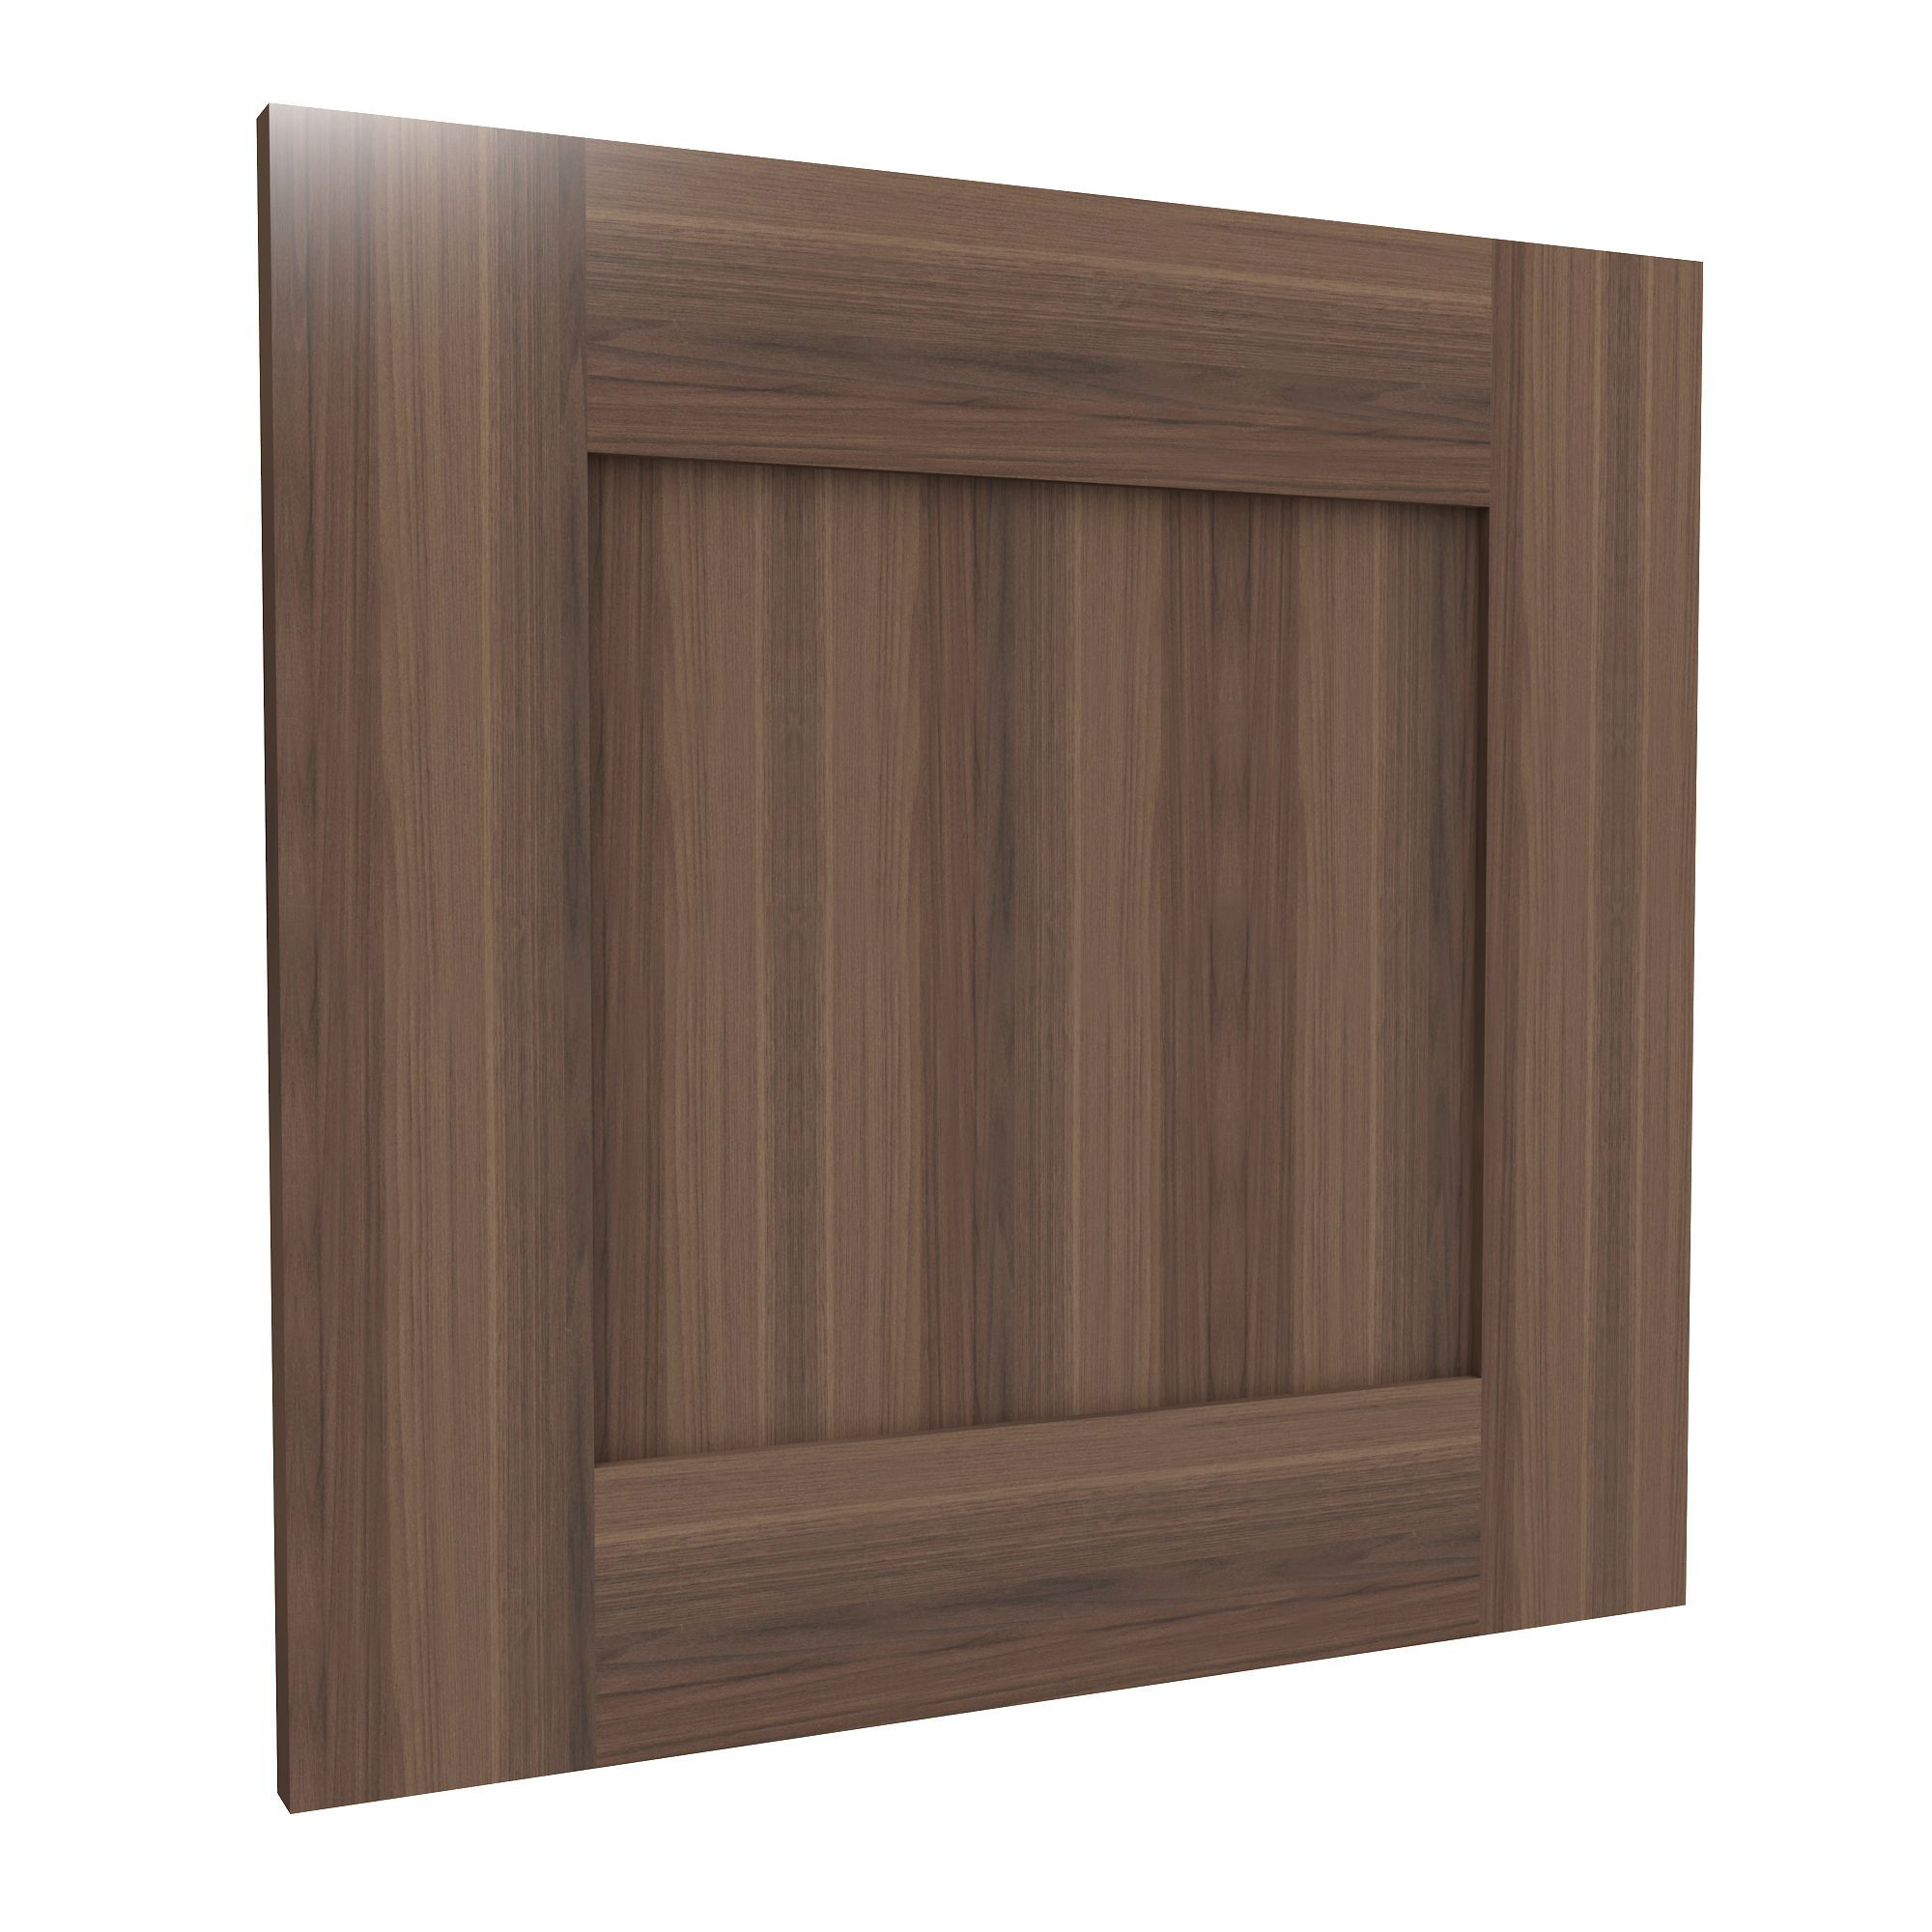 Darwin Modular Walnut Effect Bedside Cabinet Door (h)478mm (w)497mm